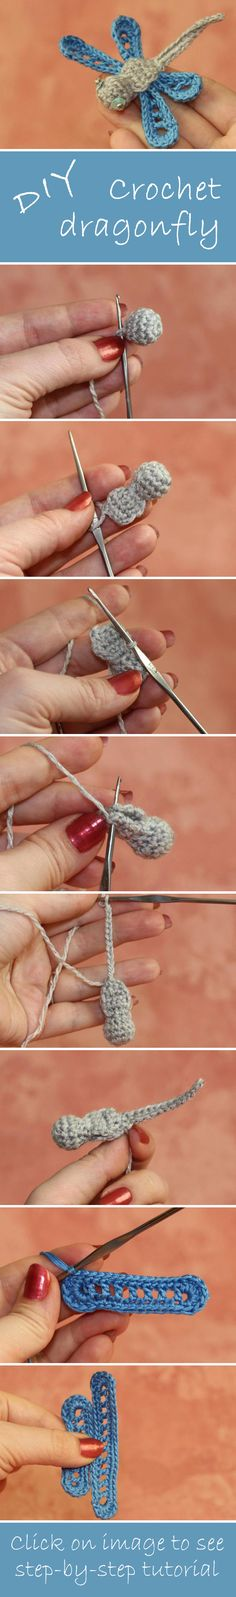 How to make crochet dragonfly. Click on image to see step-by-step tutorial